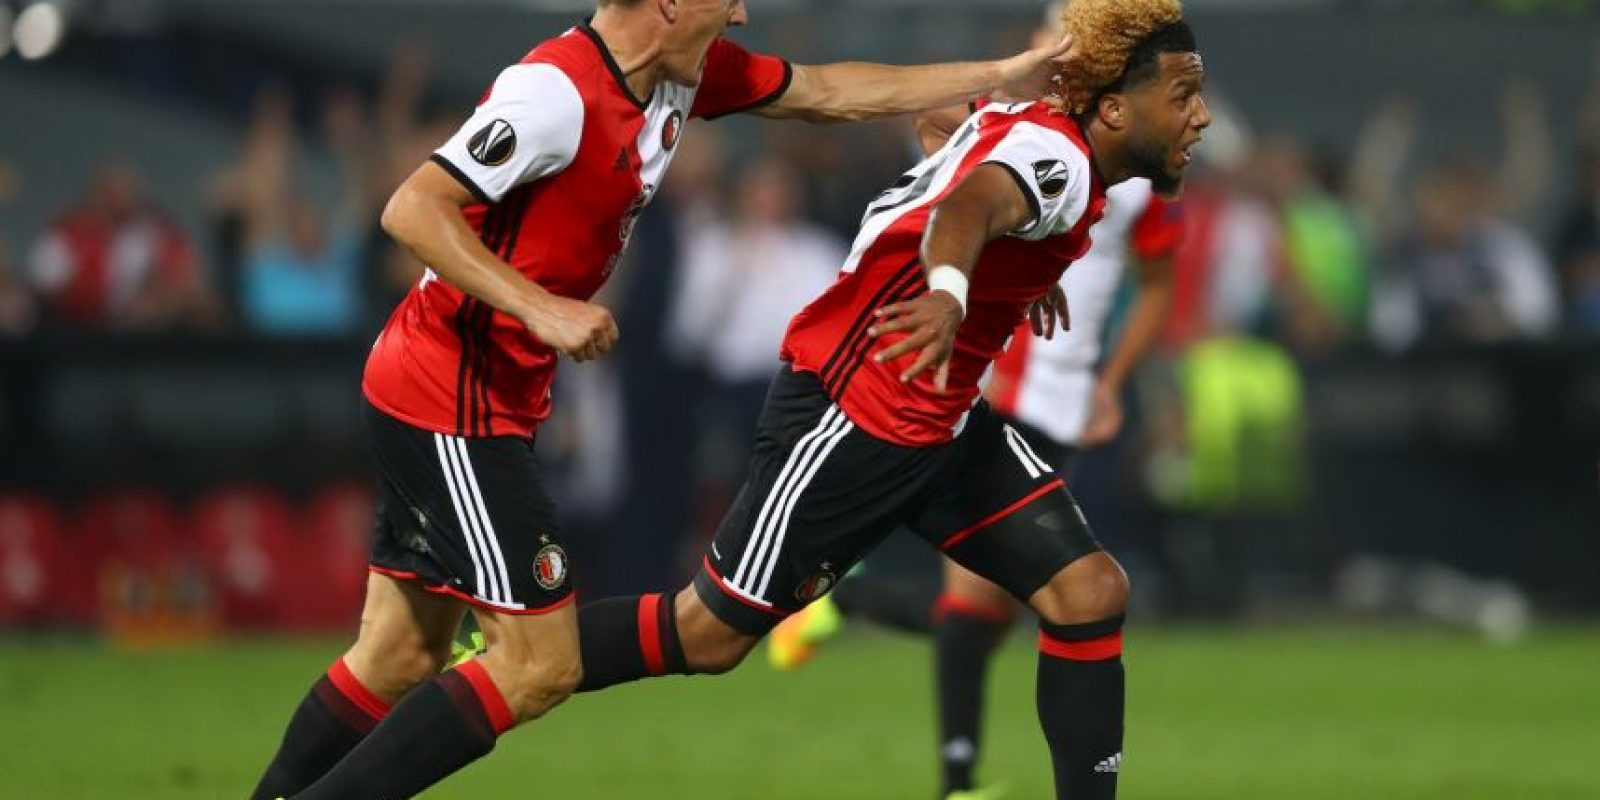 Feyenoord – Holanda Foto: Getty Images